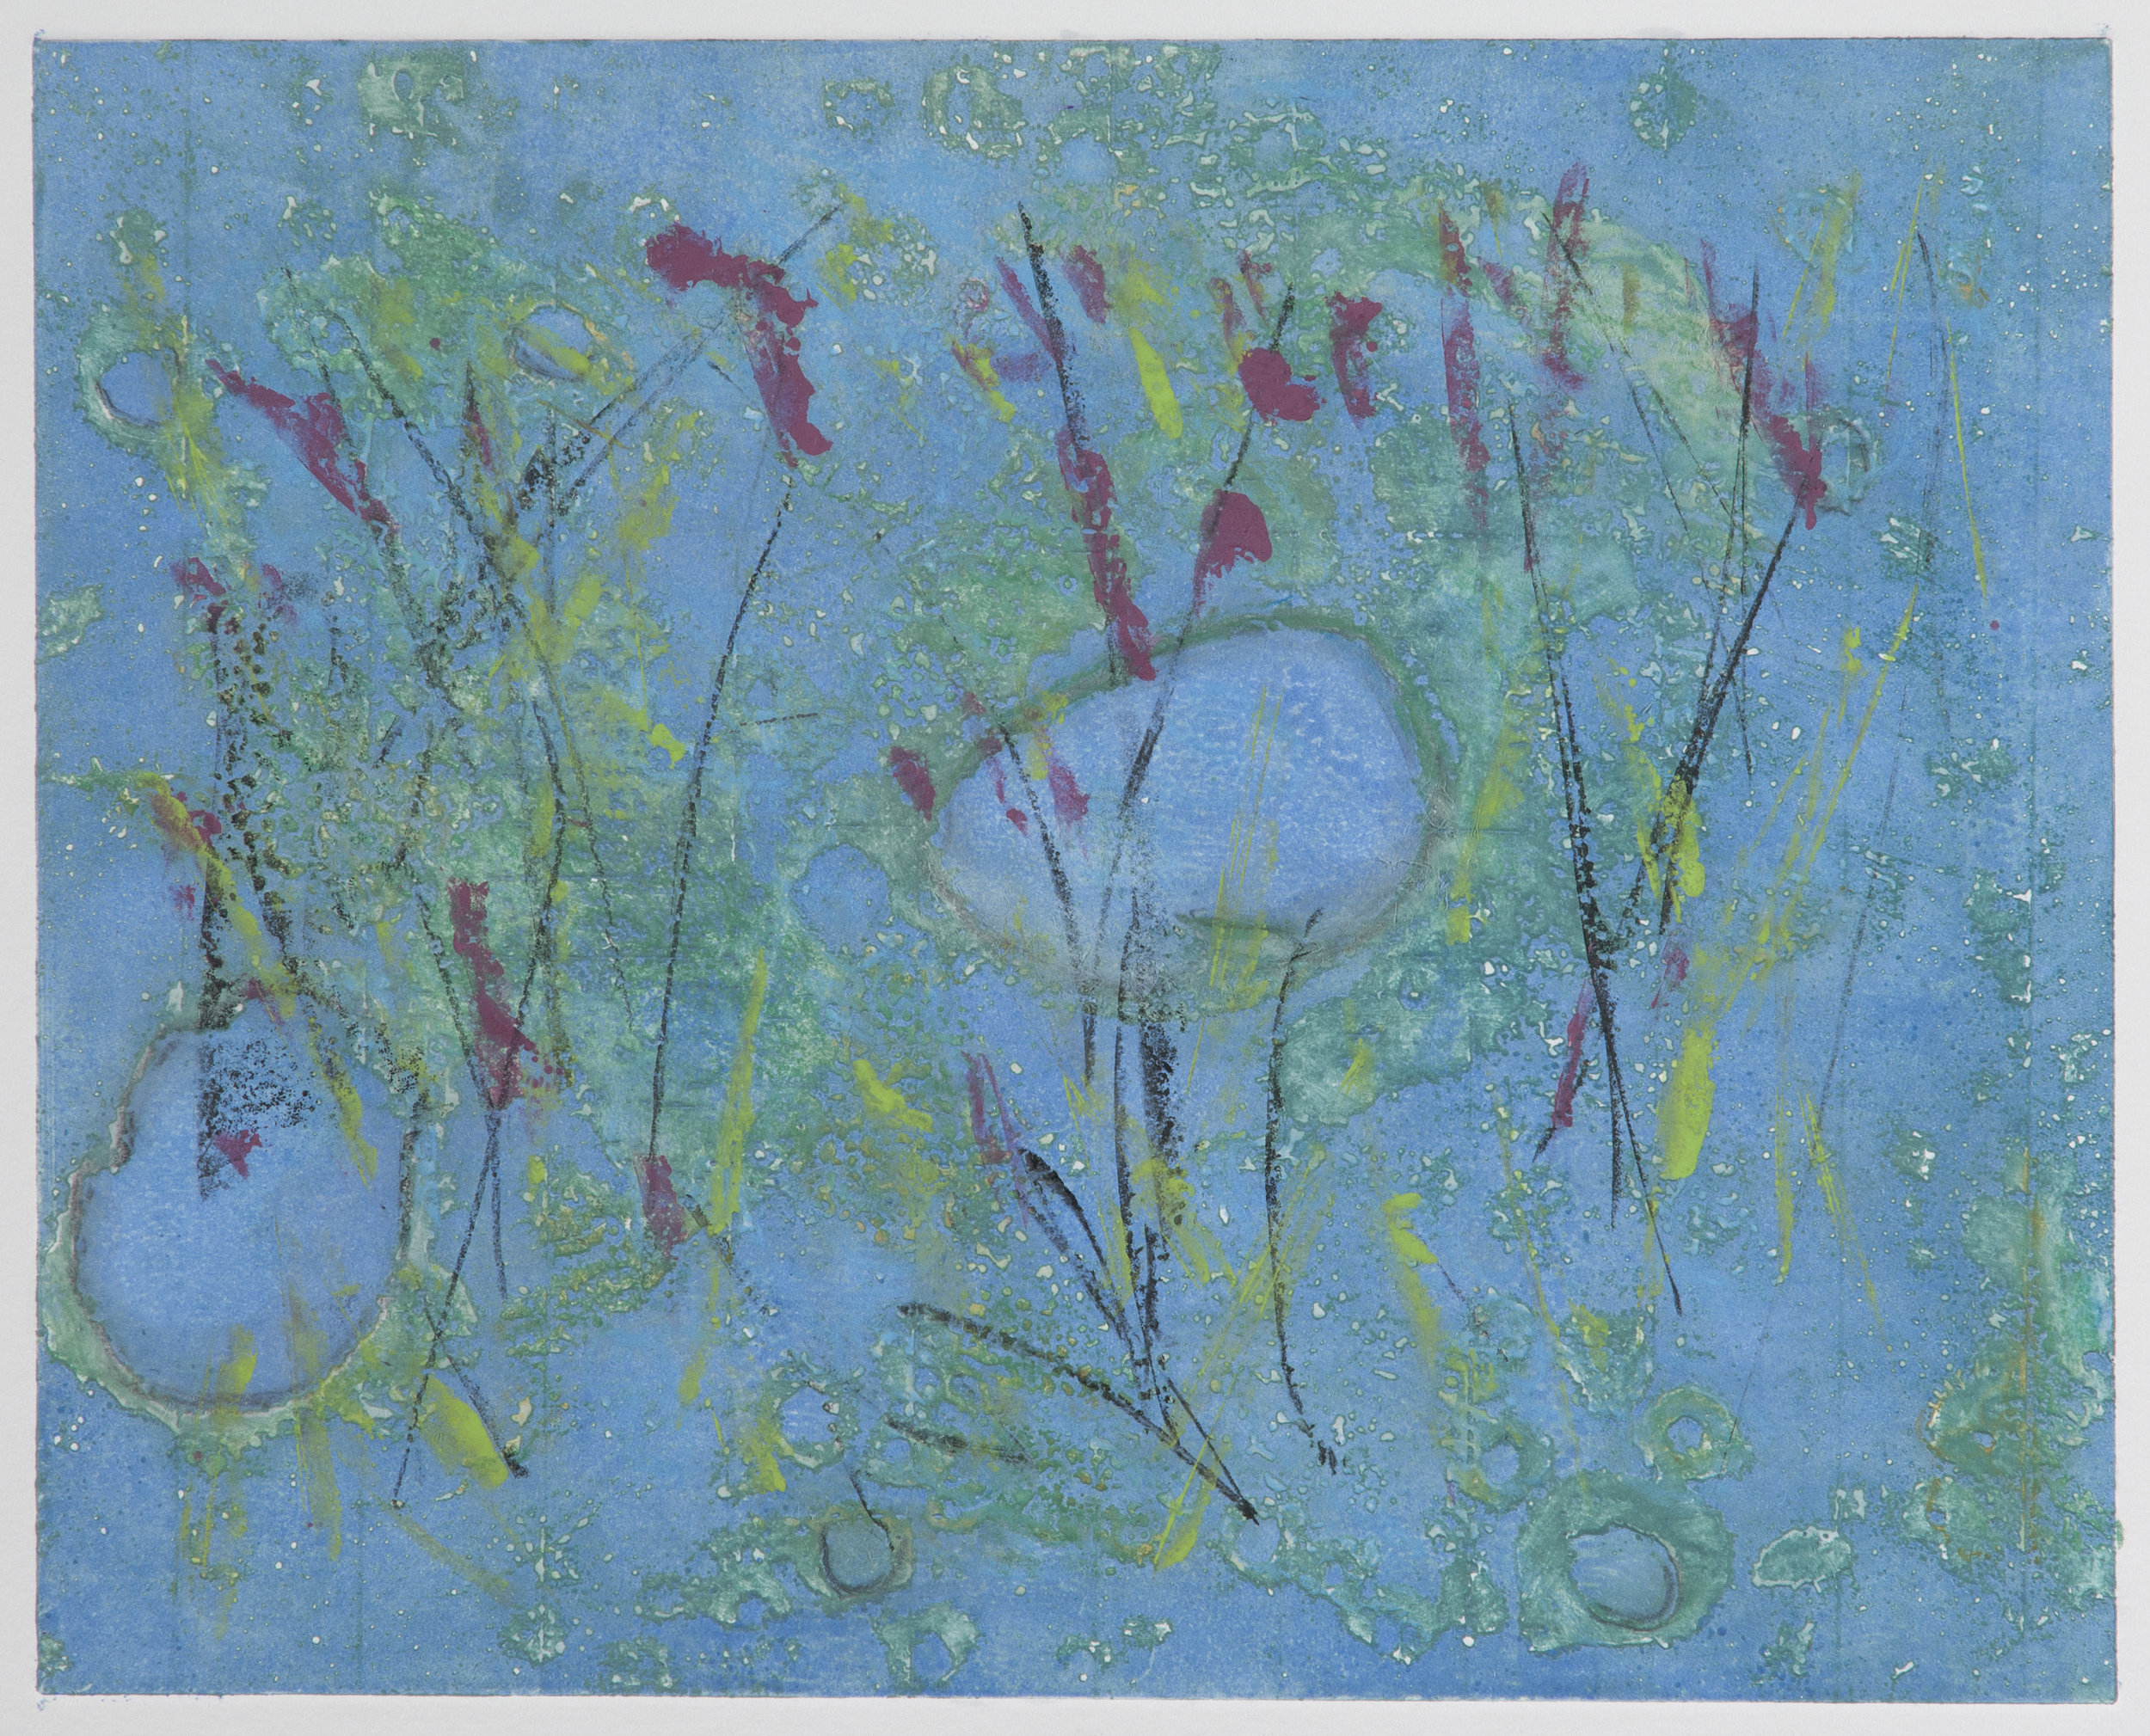 Spring Run Off, 2018, monotype, 11 x 12 in, SOLD